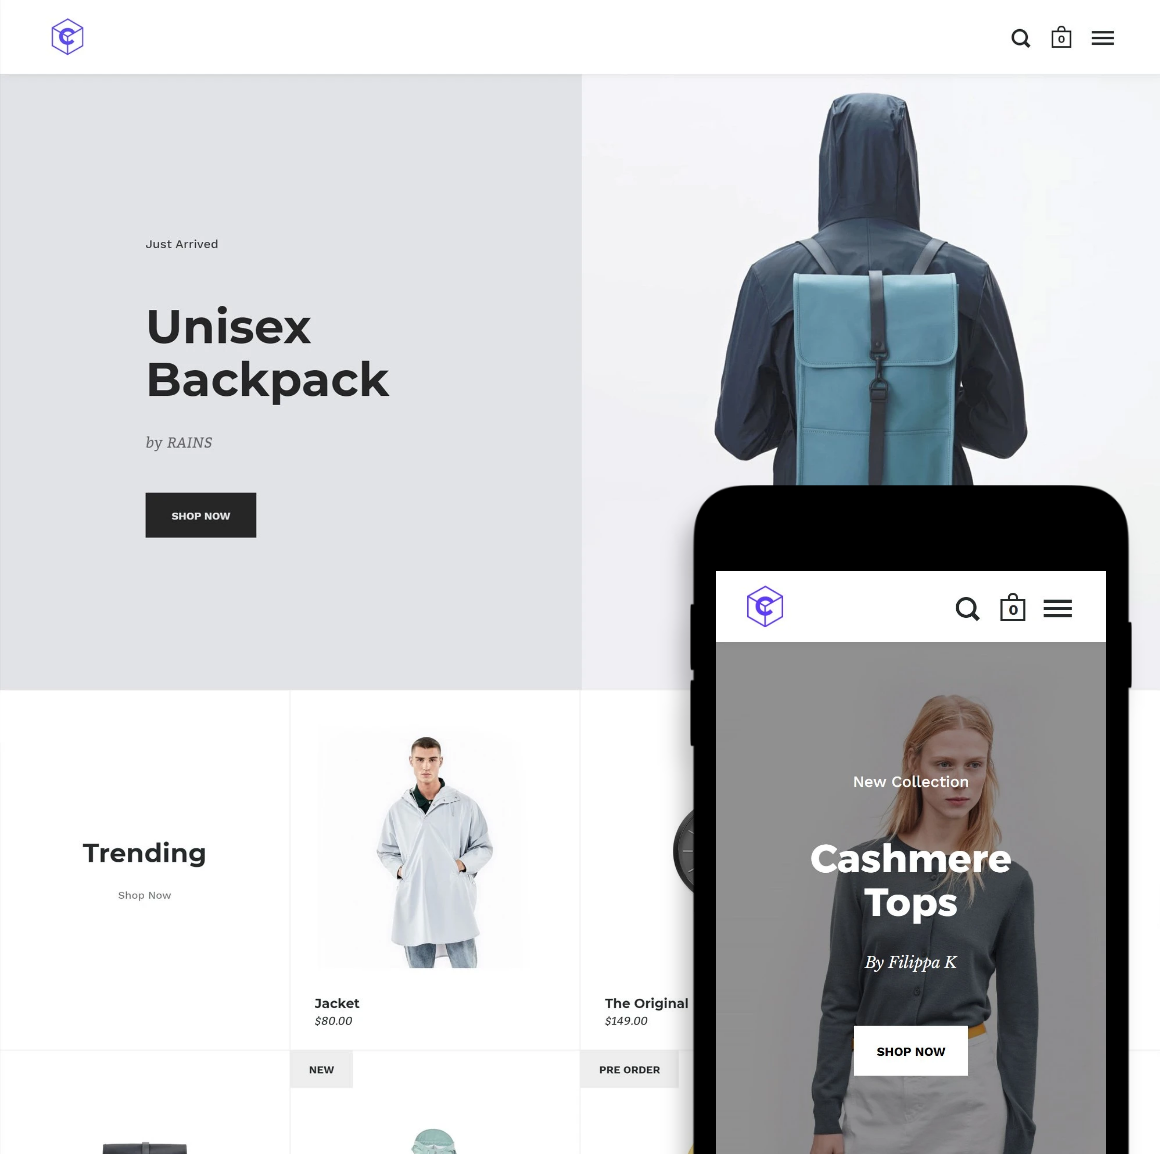 Desktop and mobile previews of the Split Shopify store theme